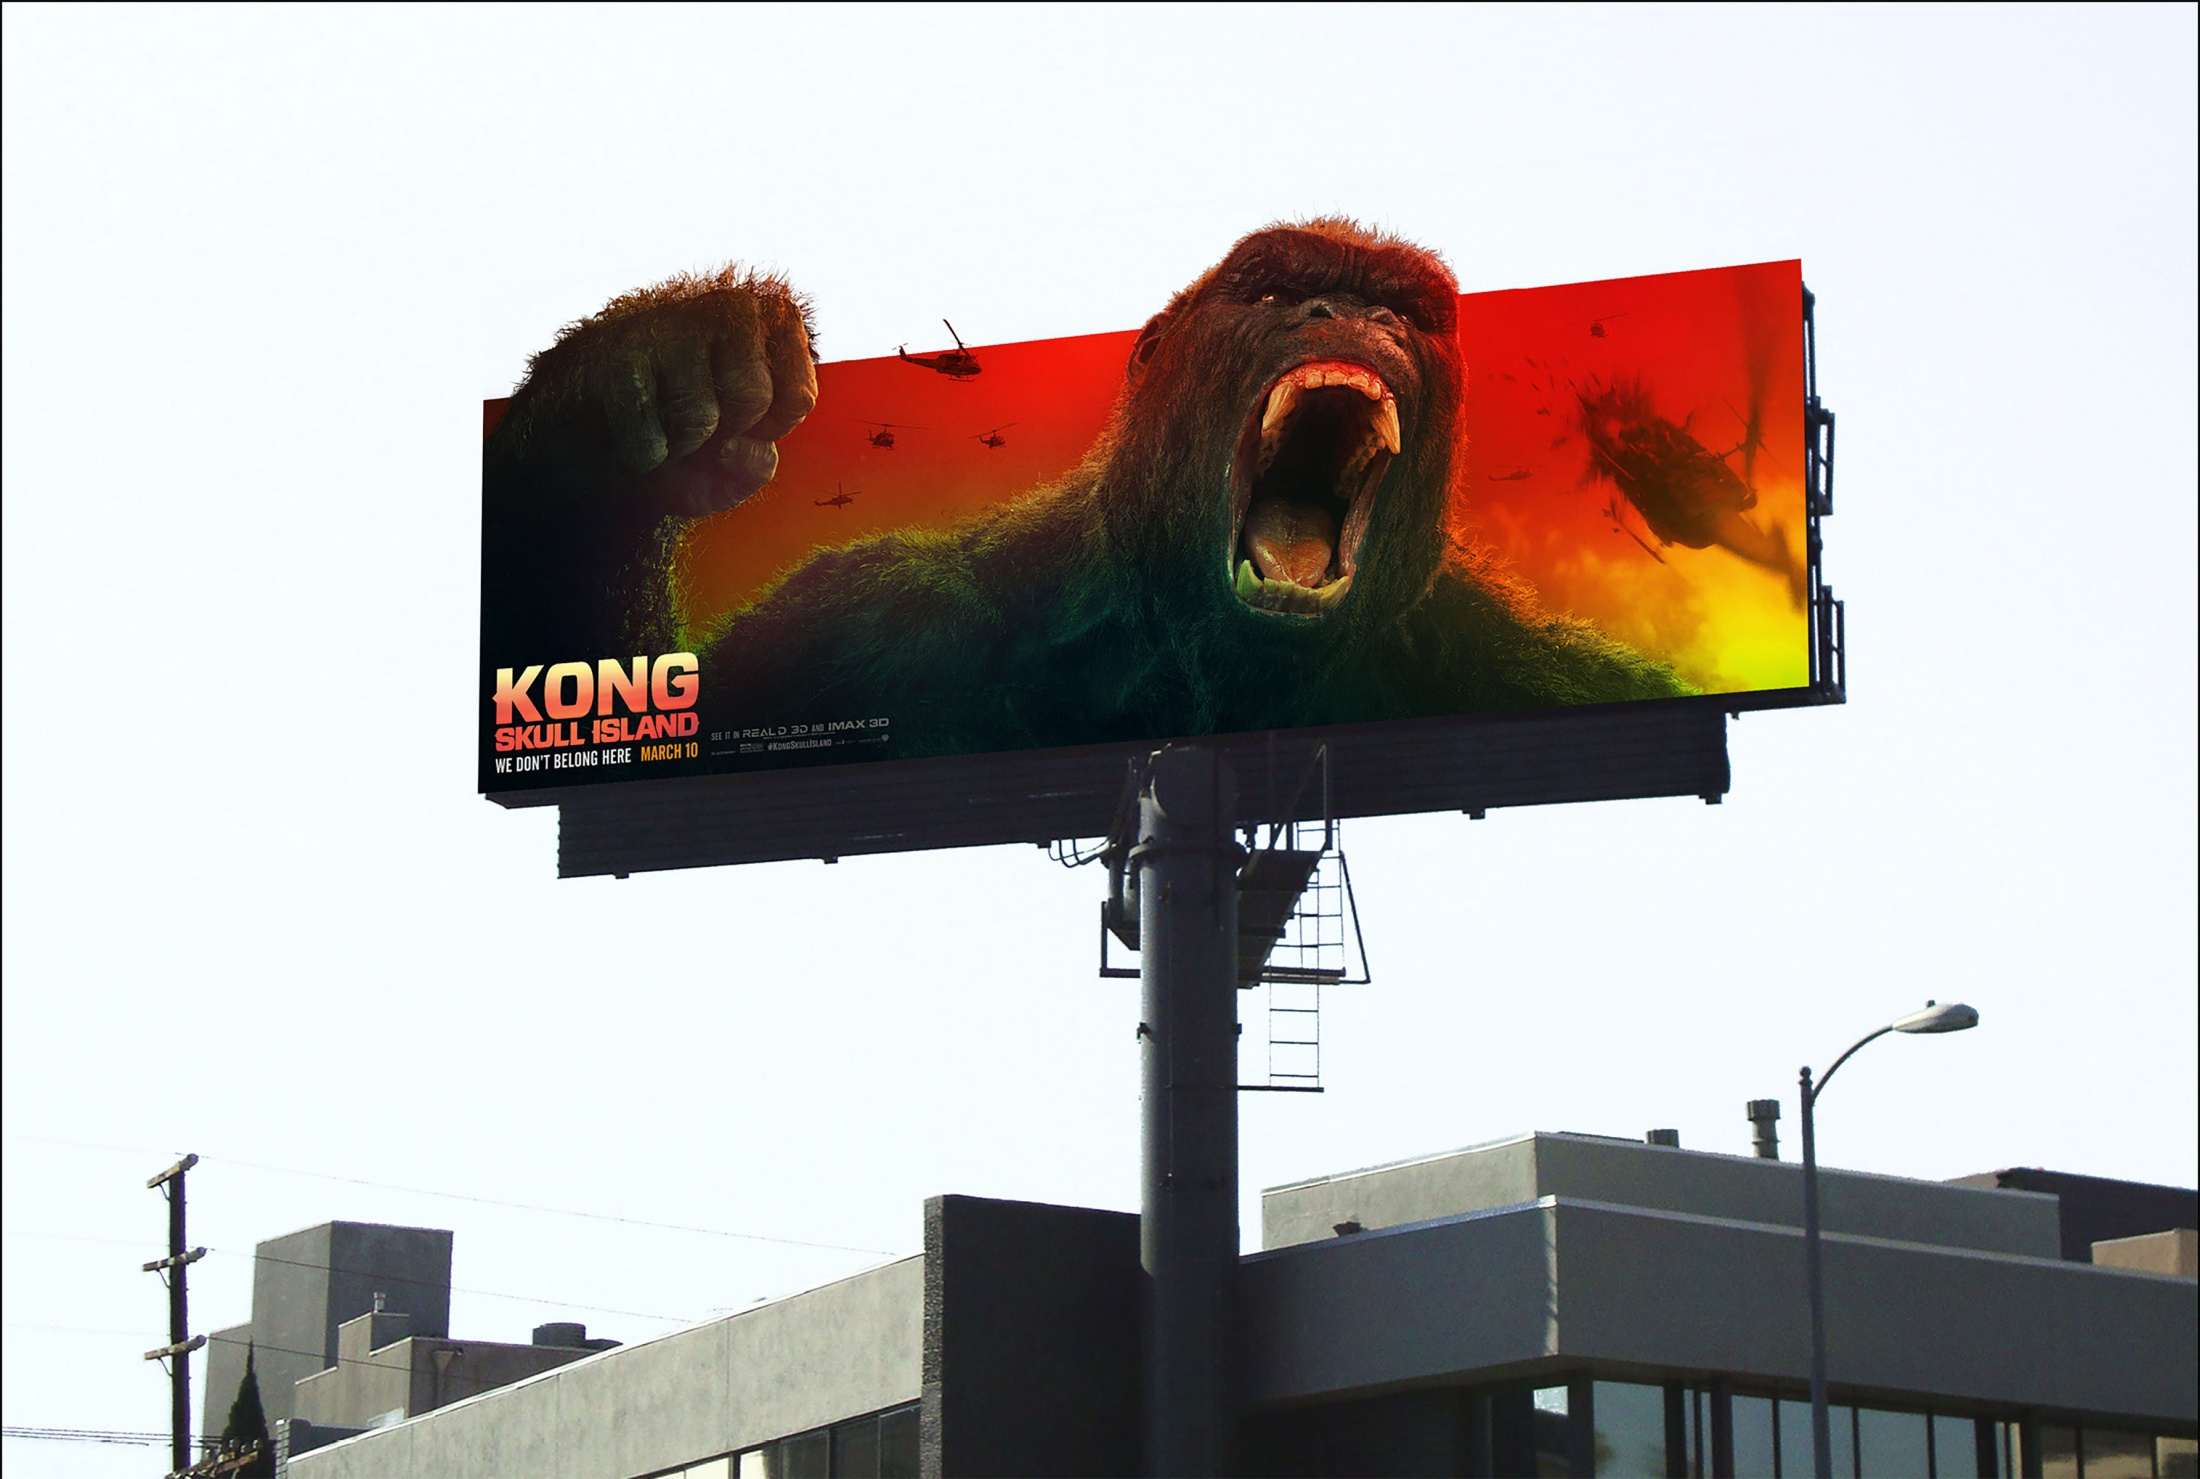 Thumbnail for Kong Breakout Billboard